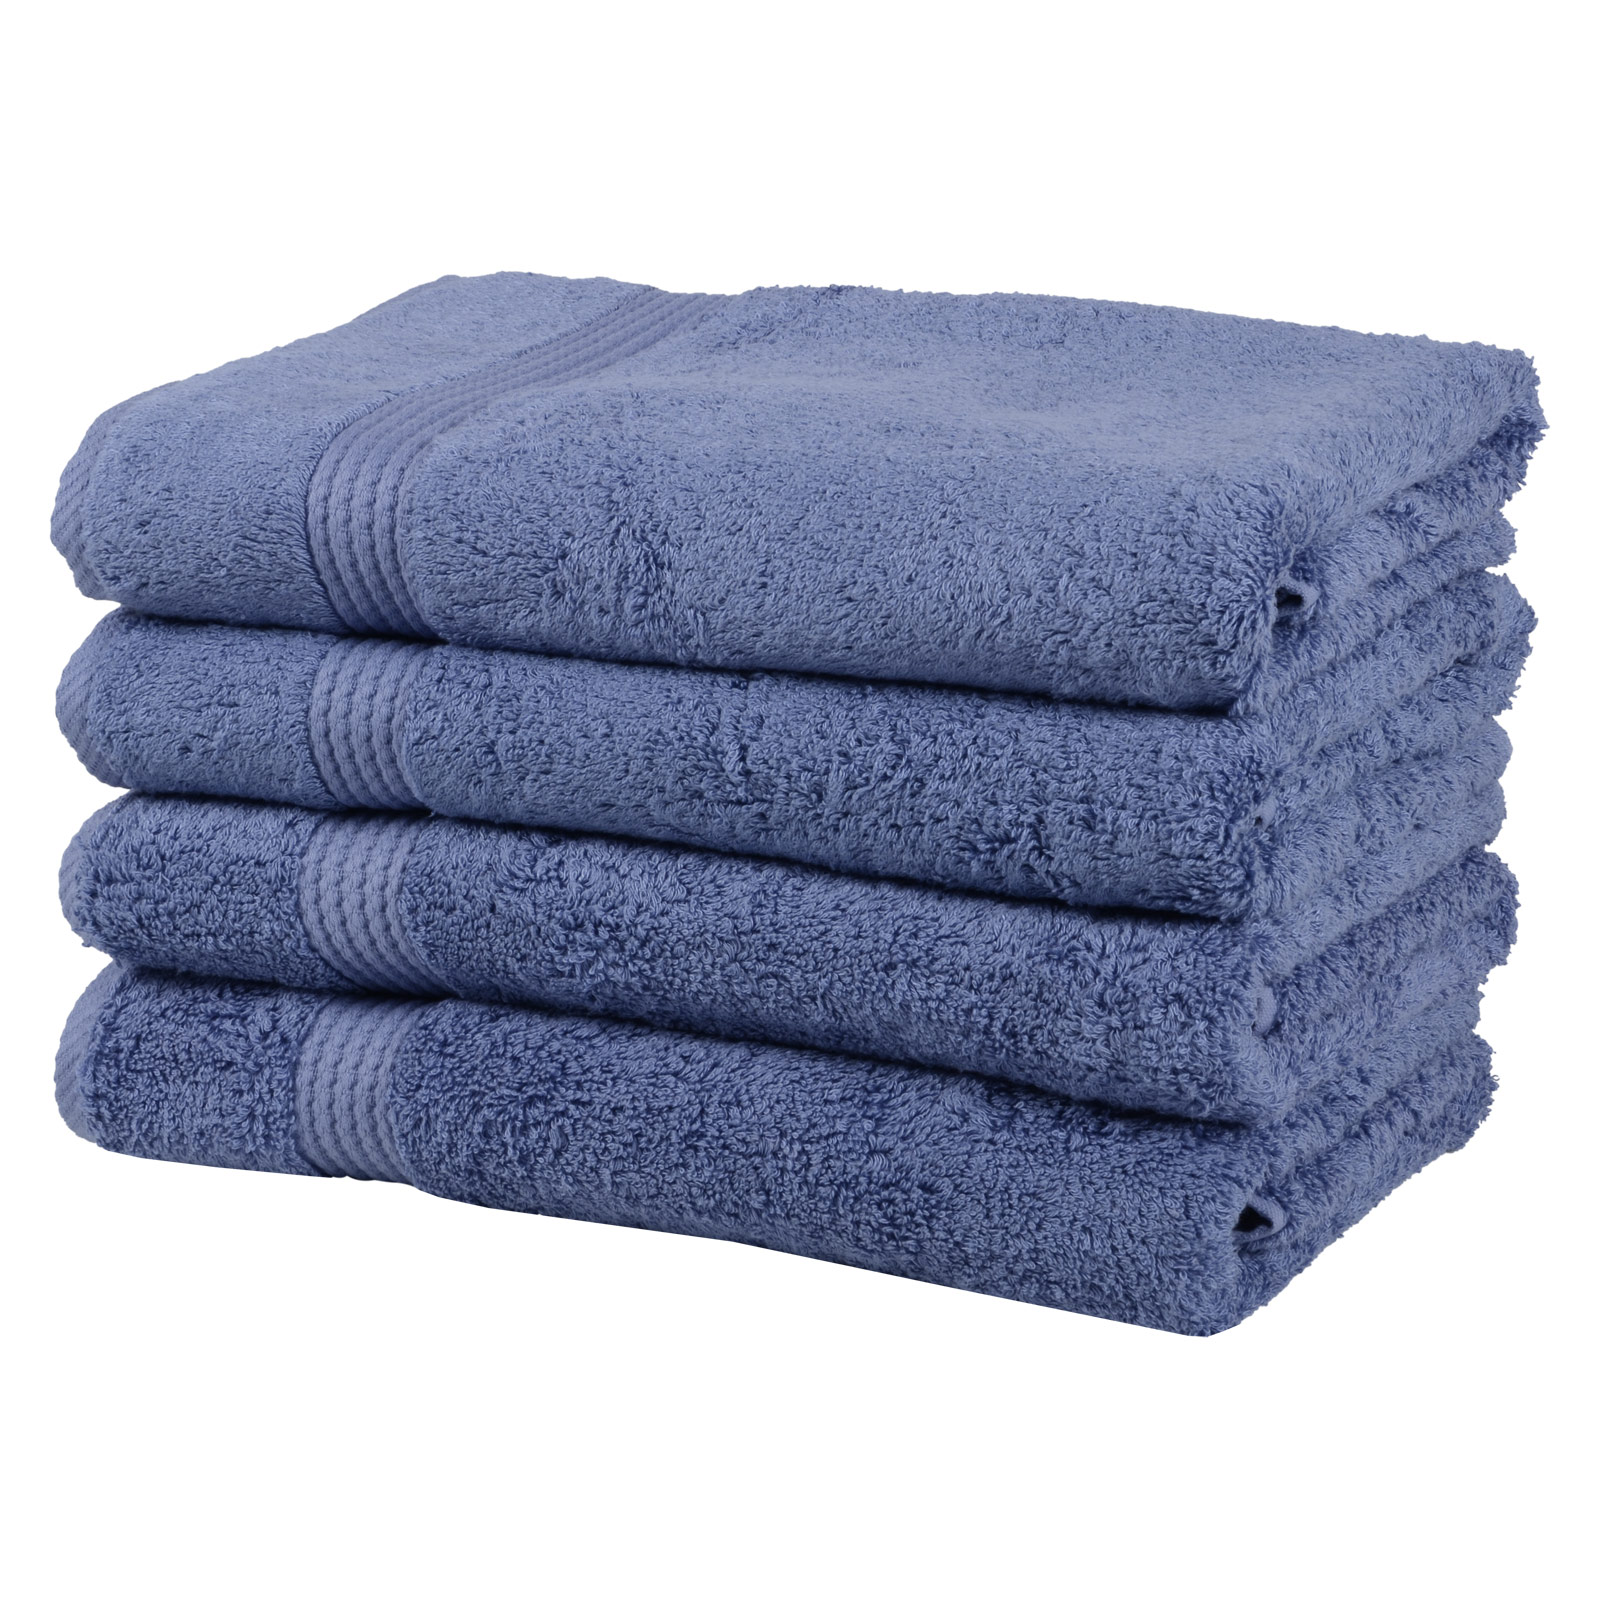 Linen hand towels bathroom